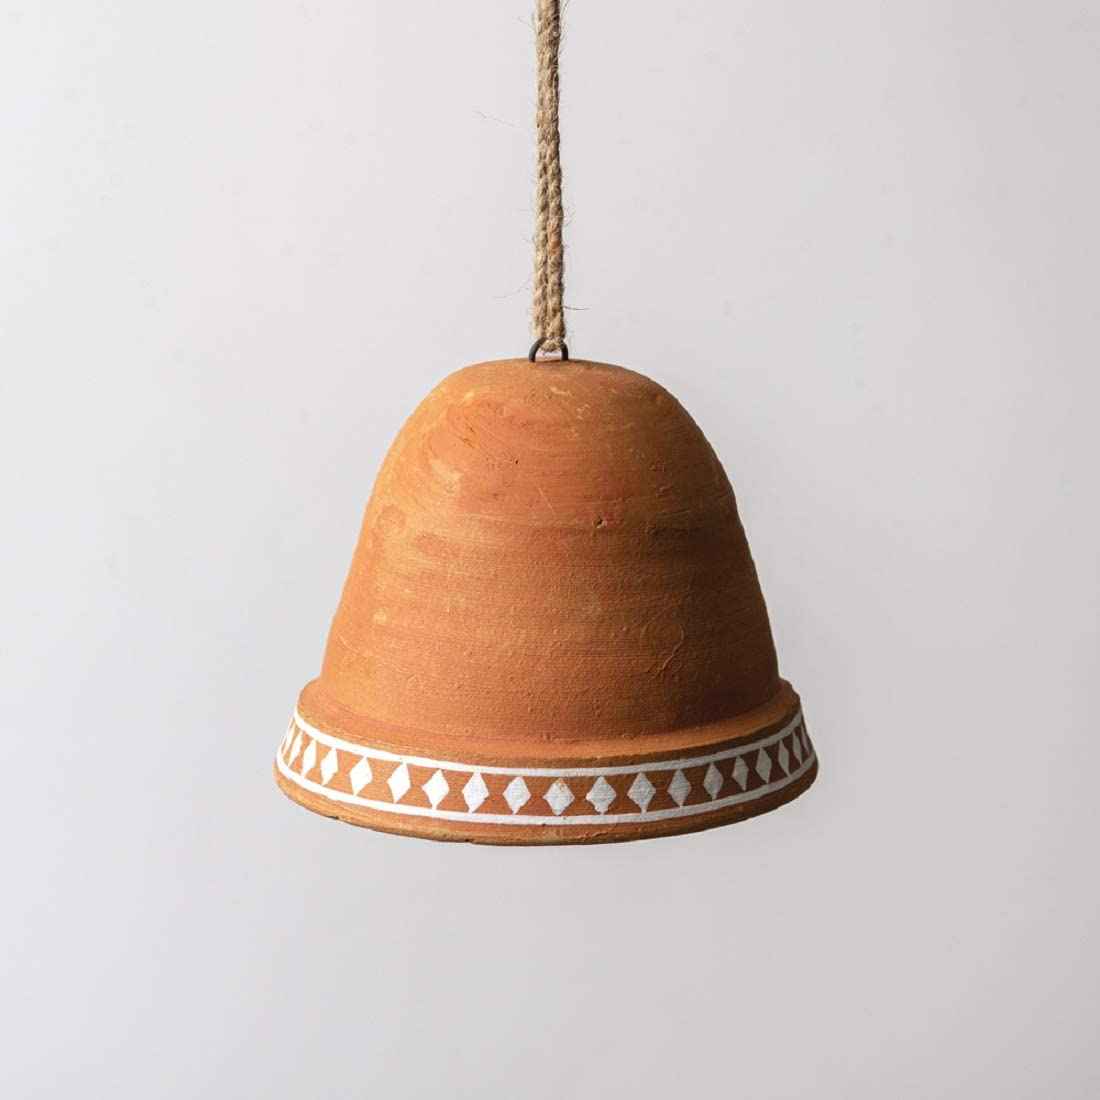 CTW Home Collection 460252 Dome Terra Cotta Bell